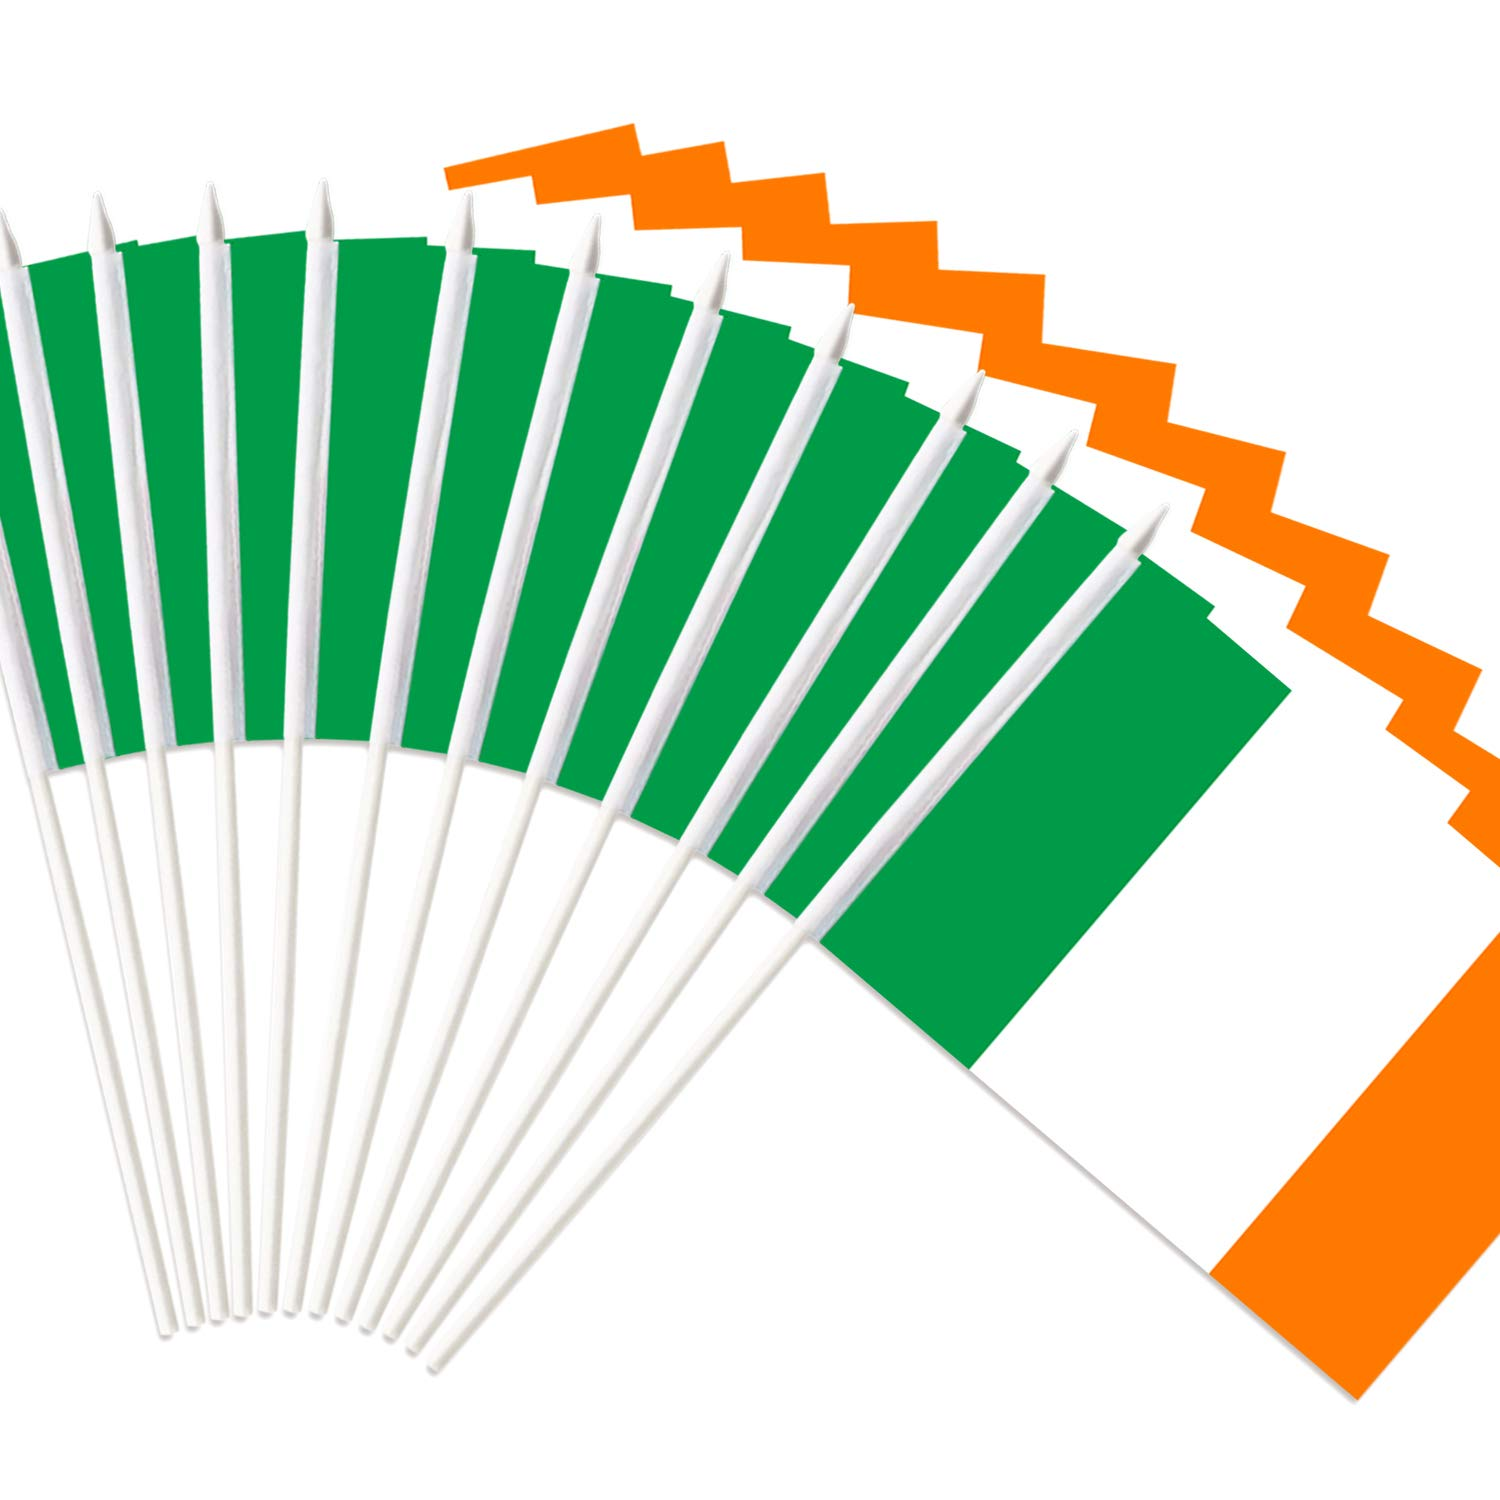 """Anley Ireland Stick Flag, Irish National 5x8 inch Handheld Mini Flag with 12"""" White Solid Pole - Vivid Color and Fade Resistant - Hibernian 5 x 8 inch Hand Held Stick Flags with Spear Top (1 Dozen)"""